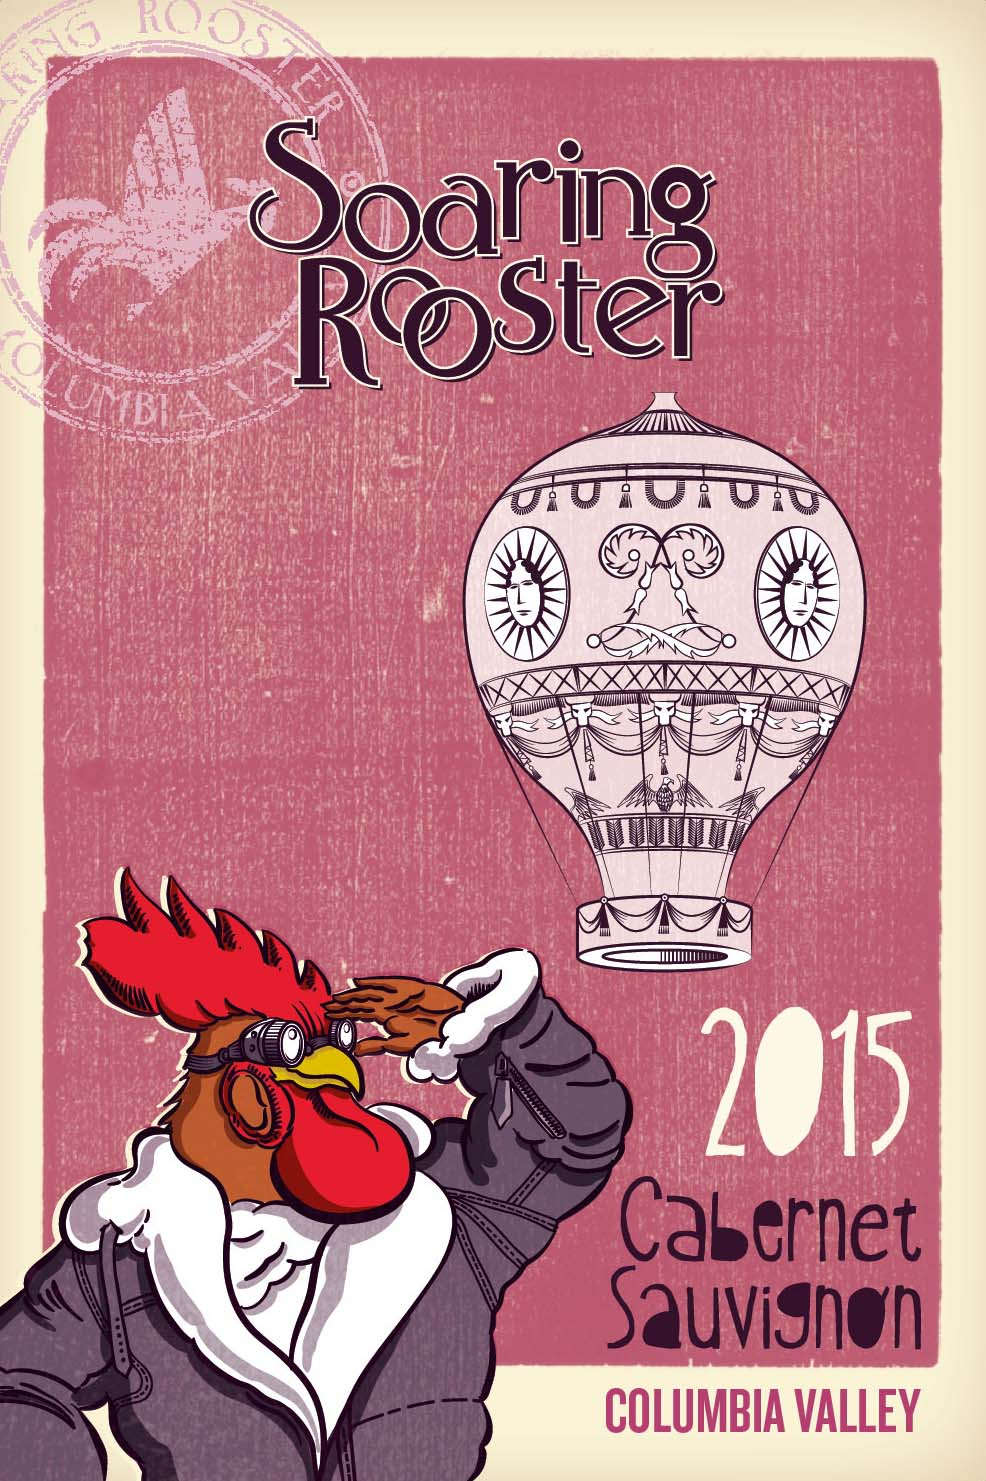 2015 Soaring Rooster Cabernet Sauvignon THUMBNAIL